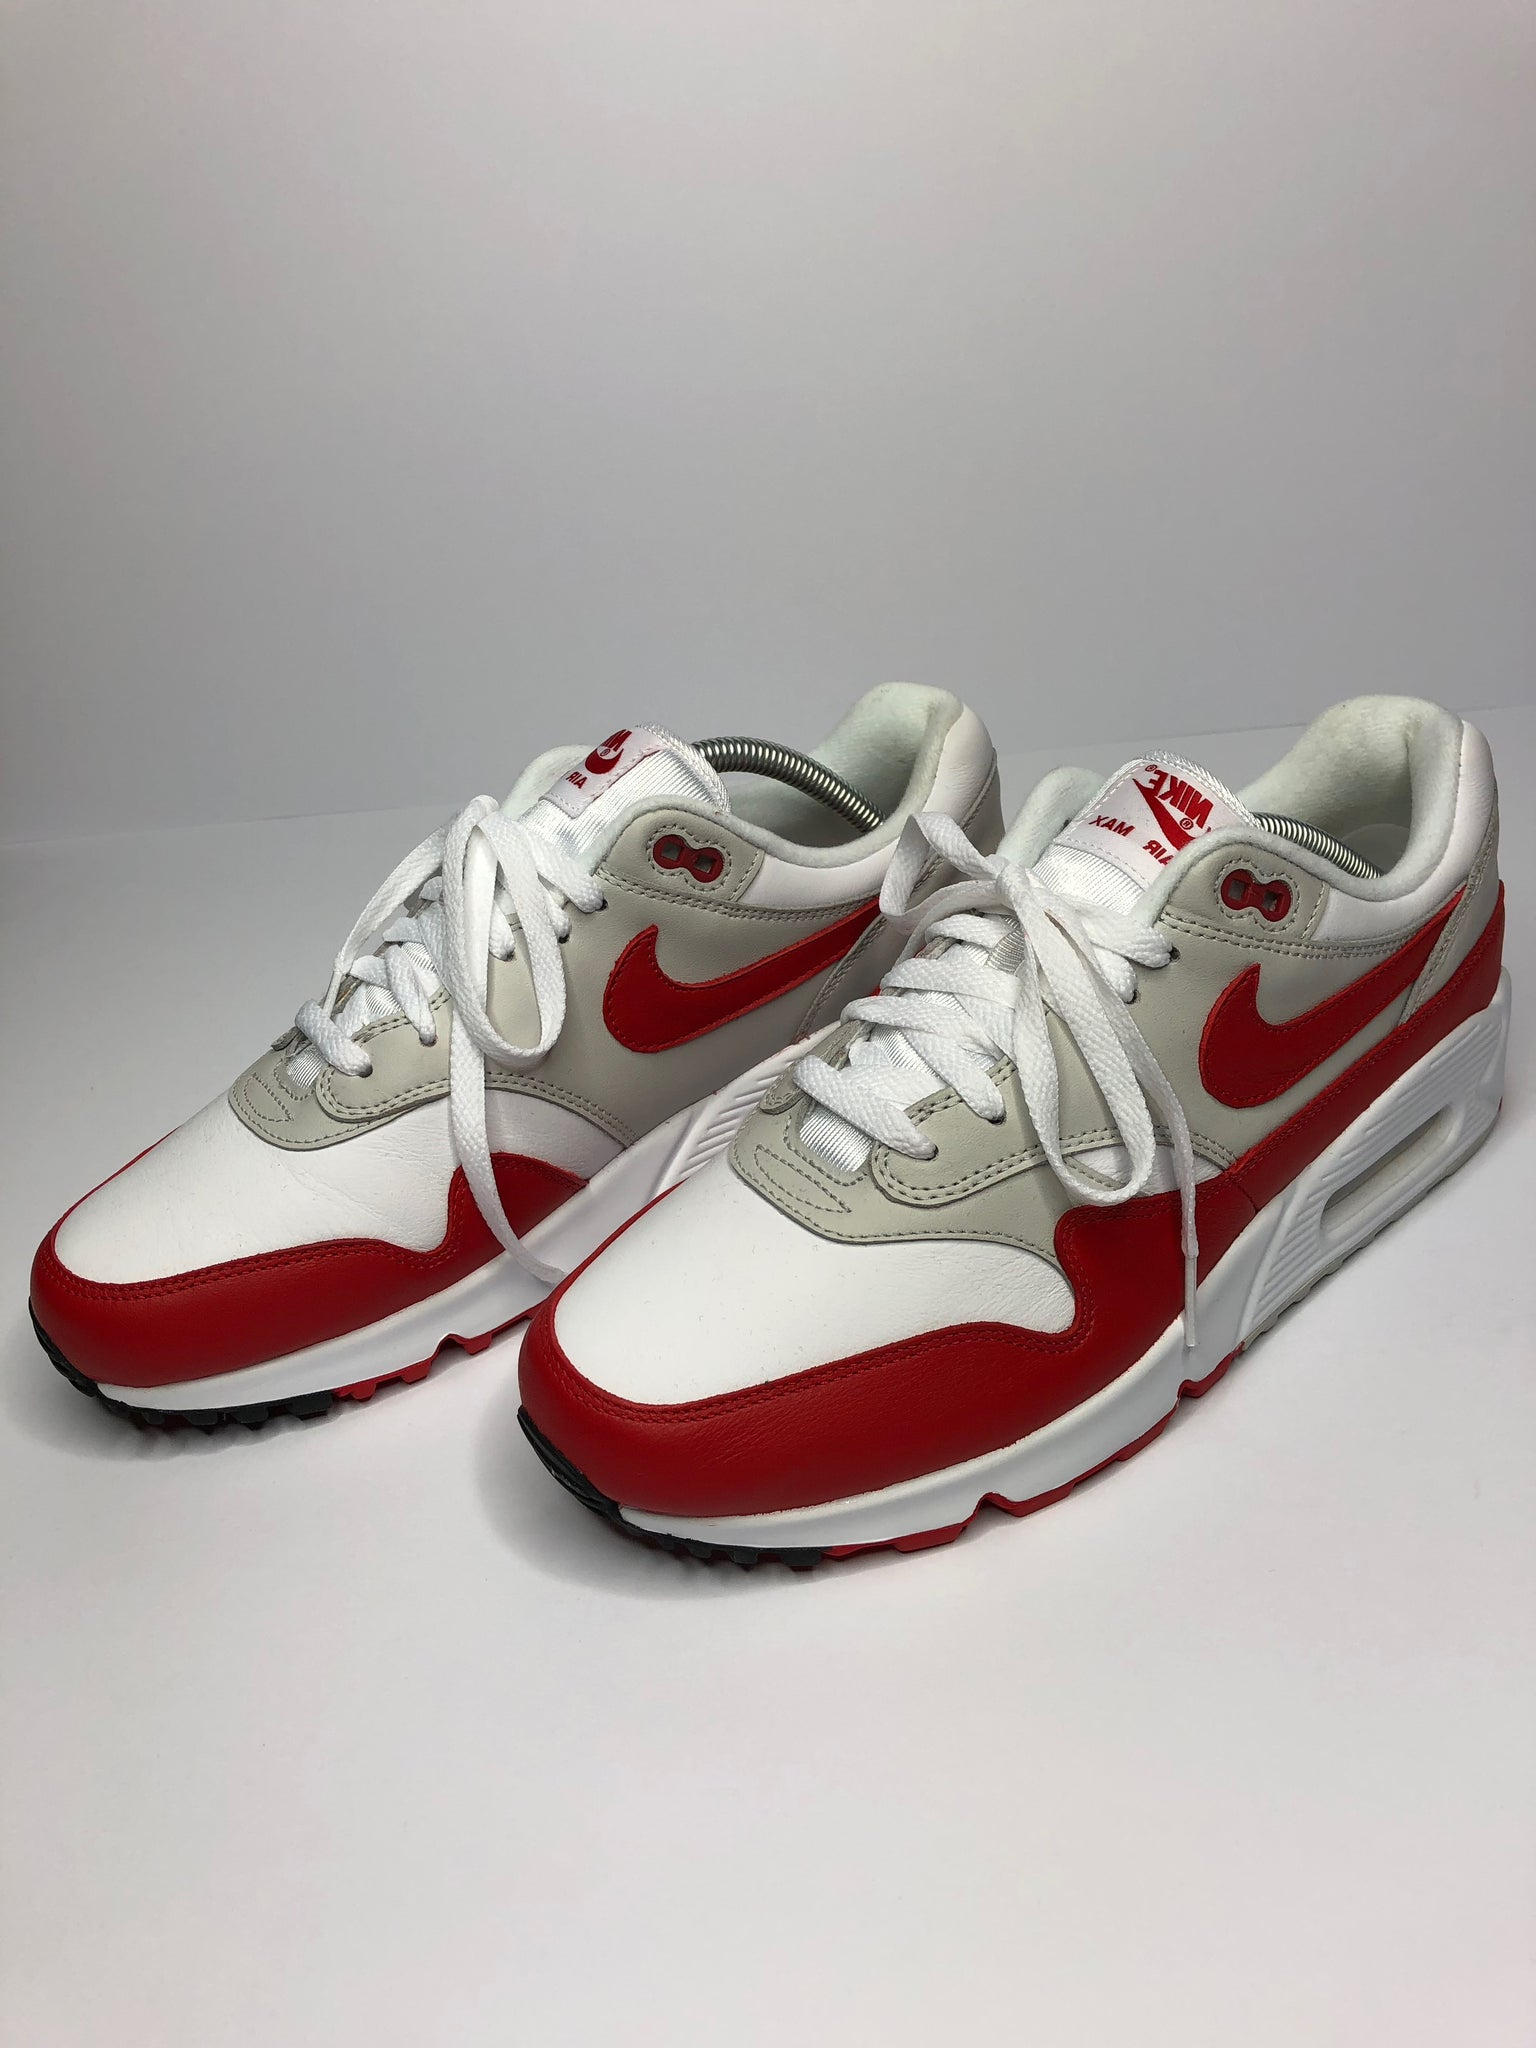 separation shoes e39ff a73ce Load image into Gallery viewer, Nike Air Max 90 1 - White University ...